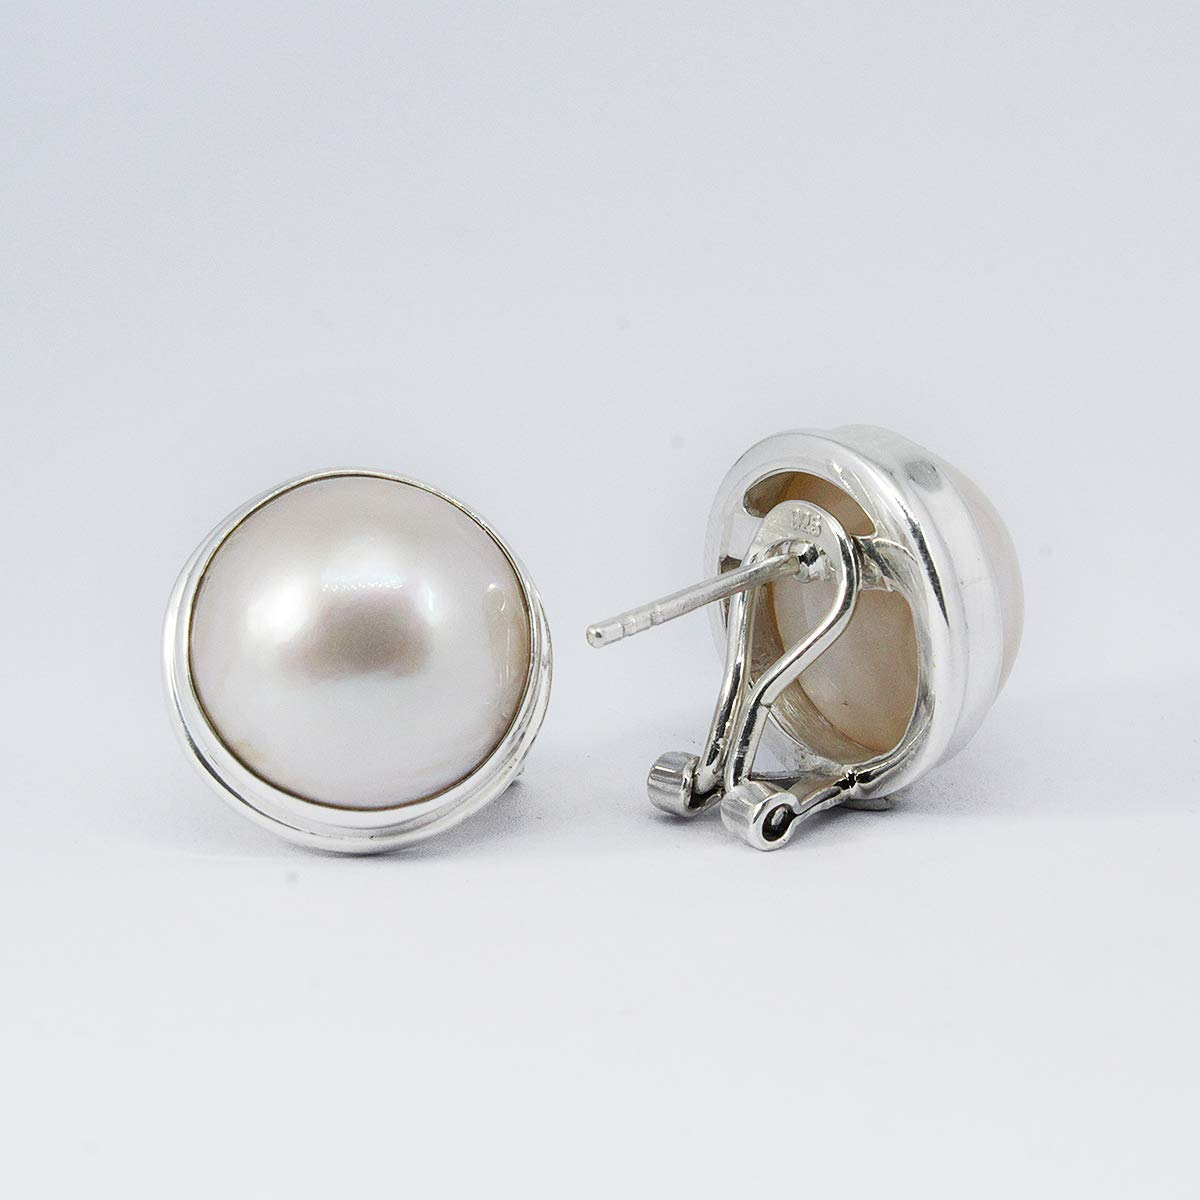 white mabe earstuds Bali handmade 925 sterling silver ear studs with enchanting 14.5-15.0 mm white mabe Round white mabe pearl earrings perfect white mabe